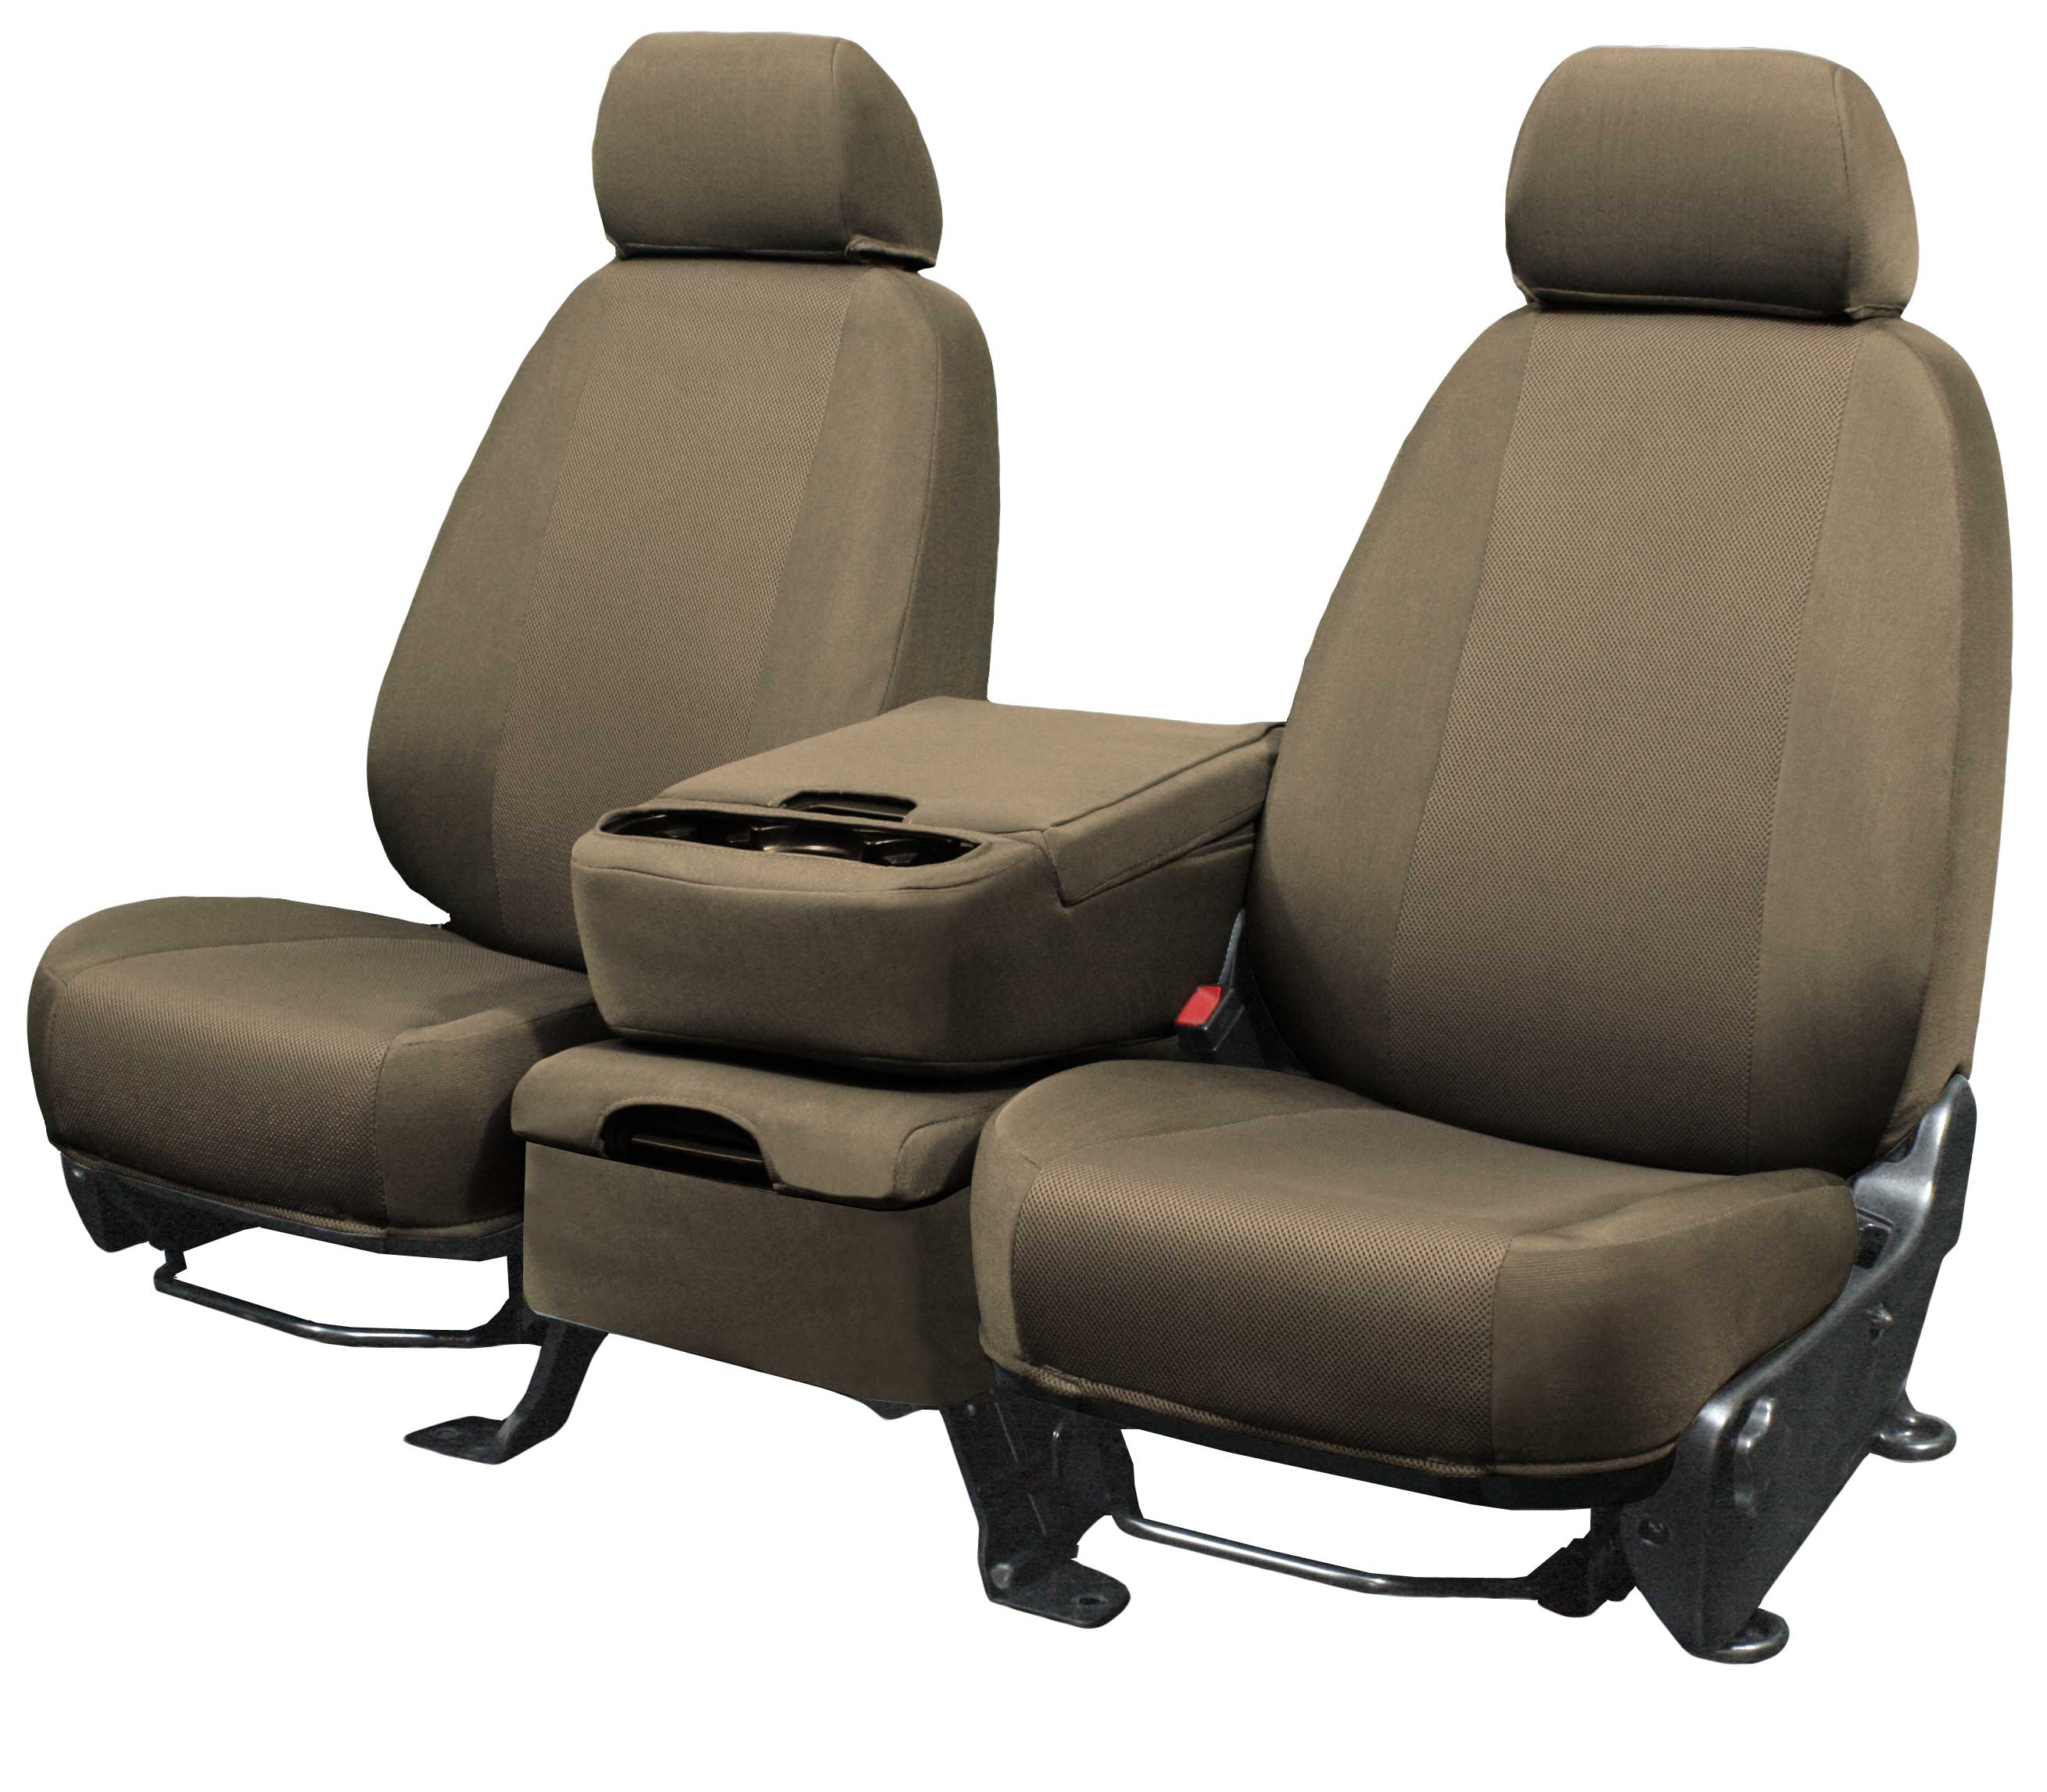 seat cover custom tailored seat covers dg232 06hh fits 02. Cars Review. Best American Auto & Cars Review